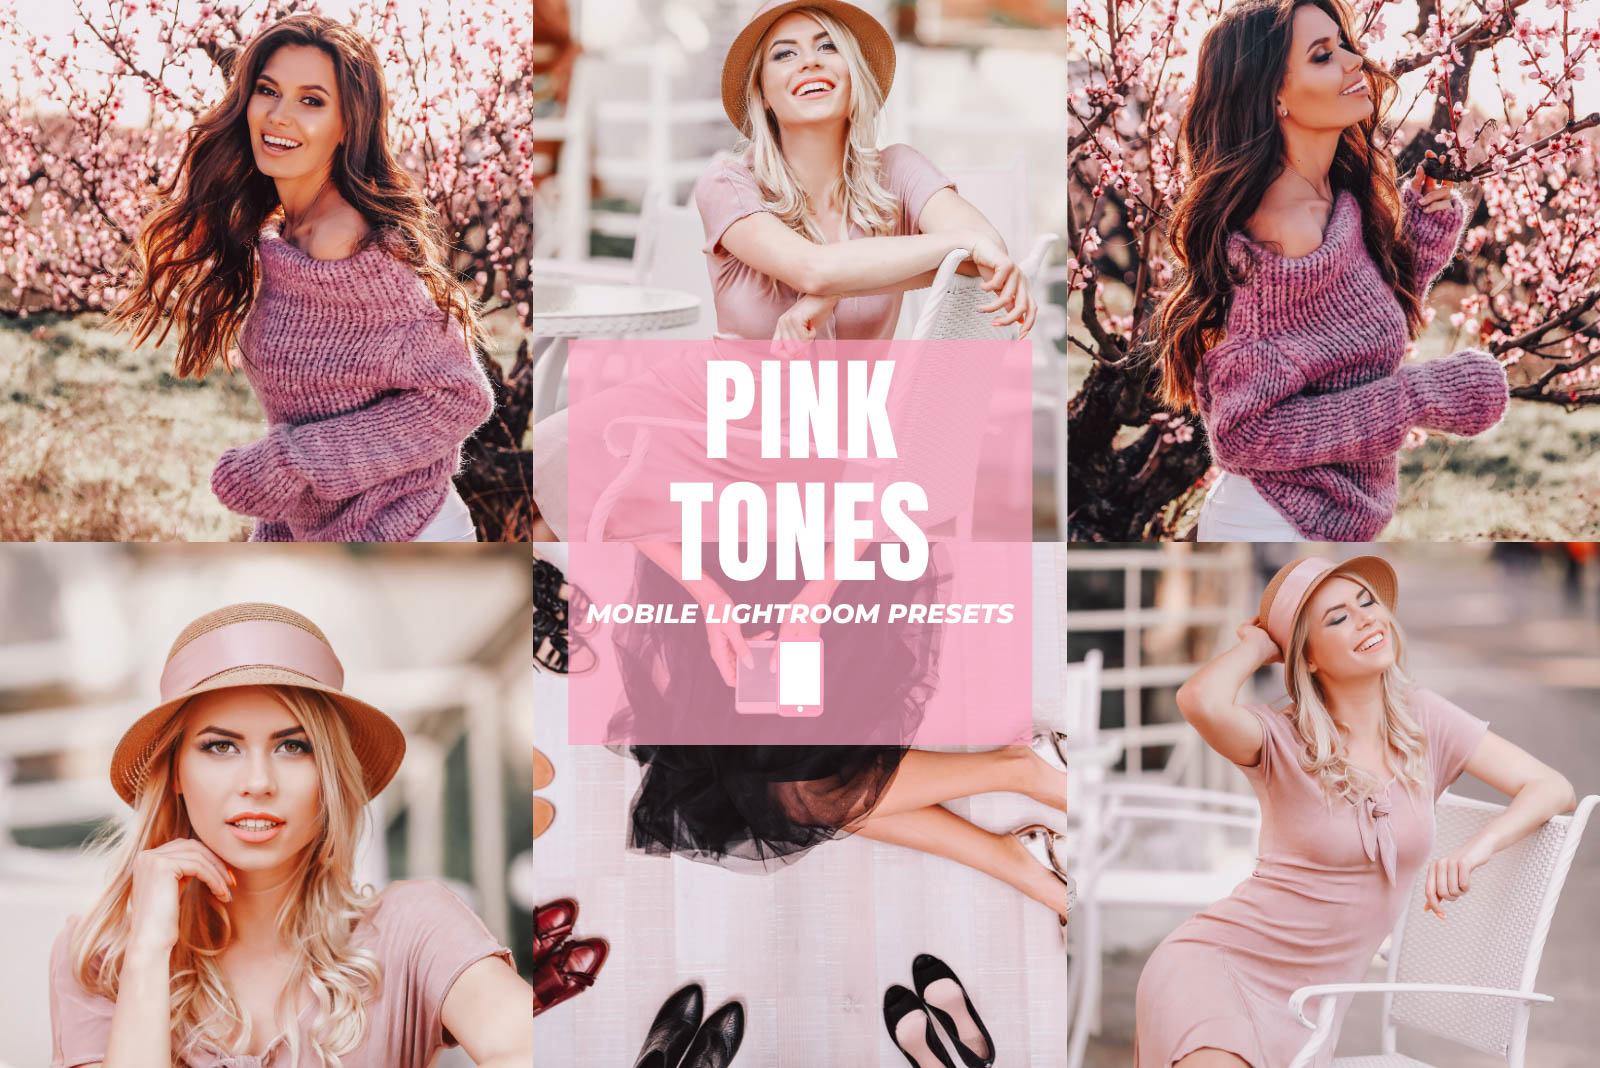 PINK TONES MOBILE LIGHTROOM PRESETS